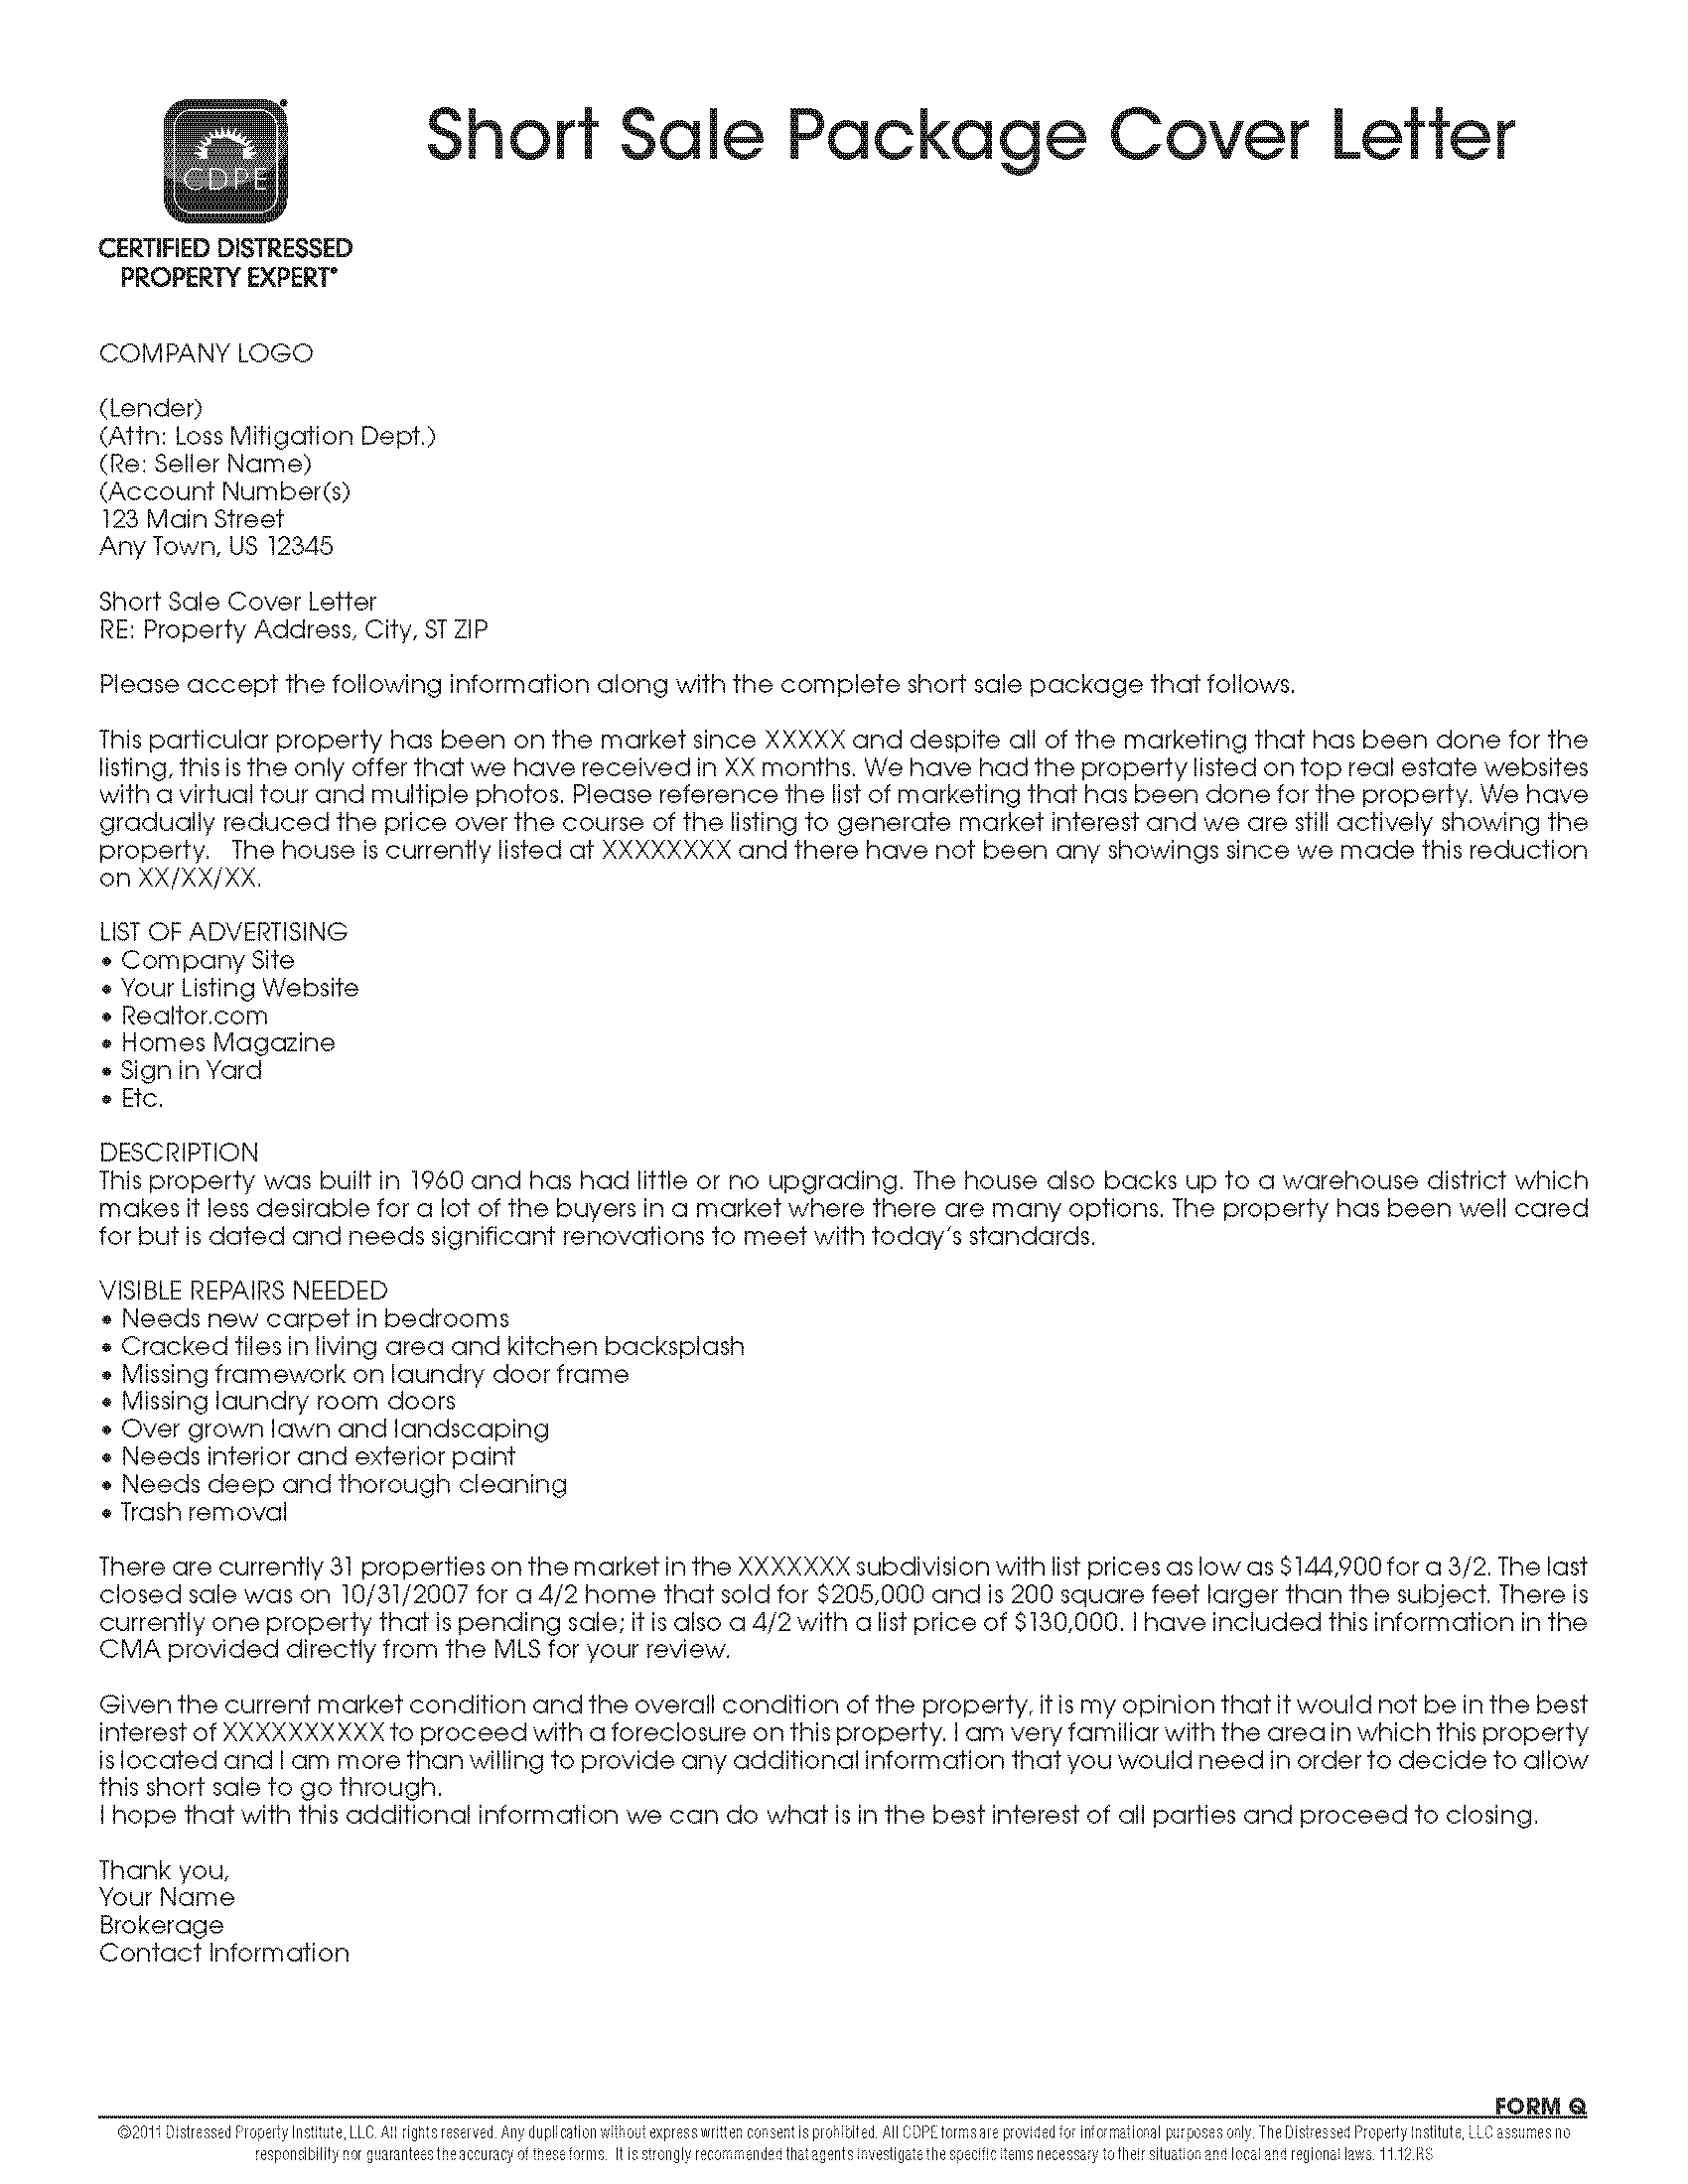 Sample Cover Letter Explaining Relocation Writing